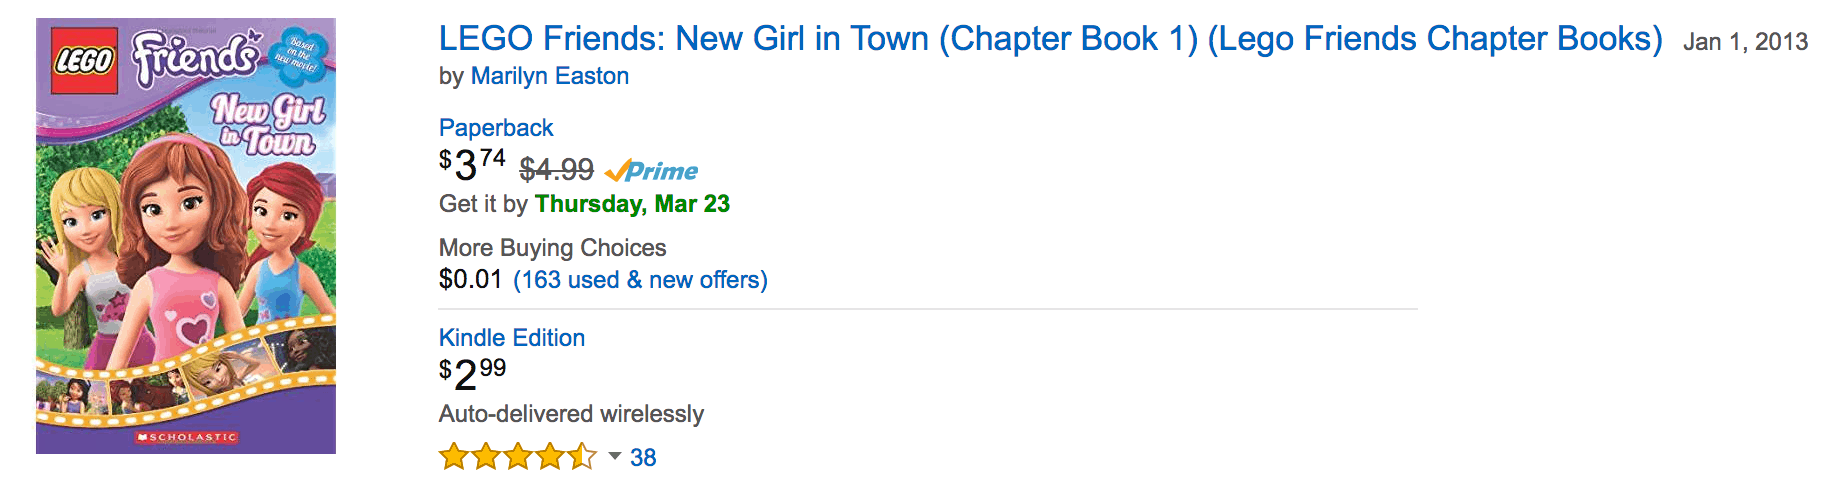 LEGO friends New Girl in Town legos books deals on amazon